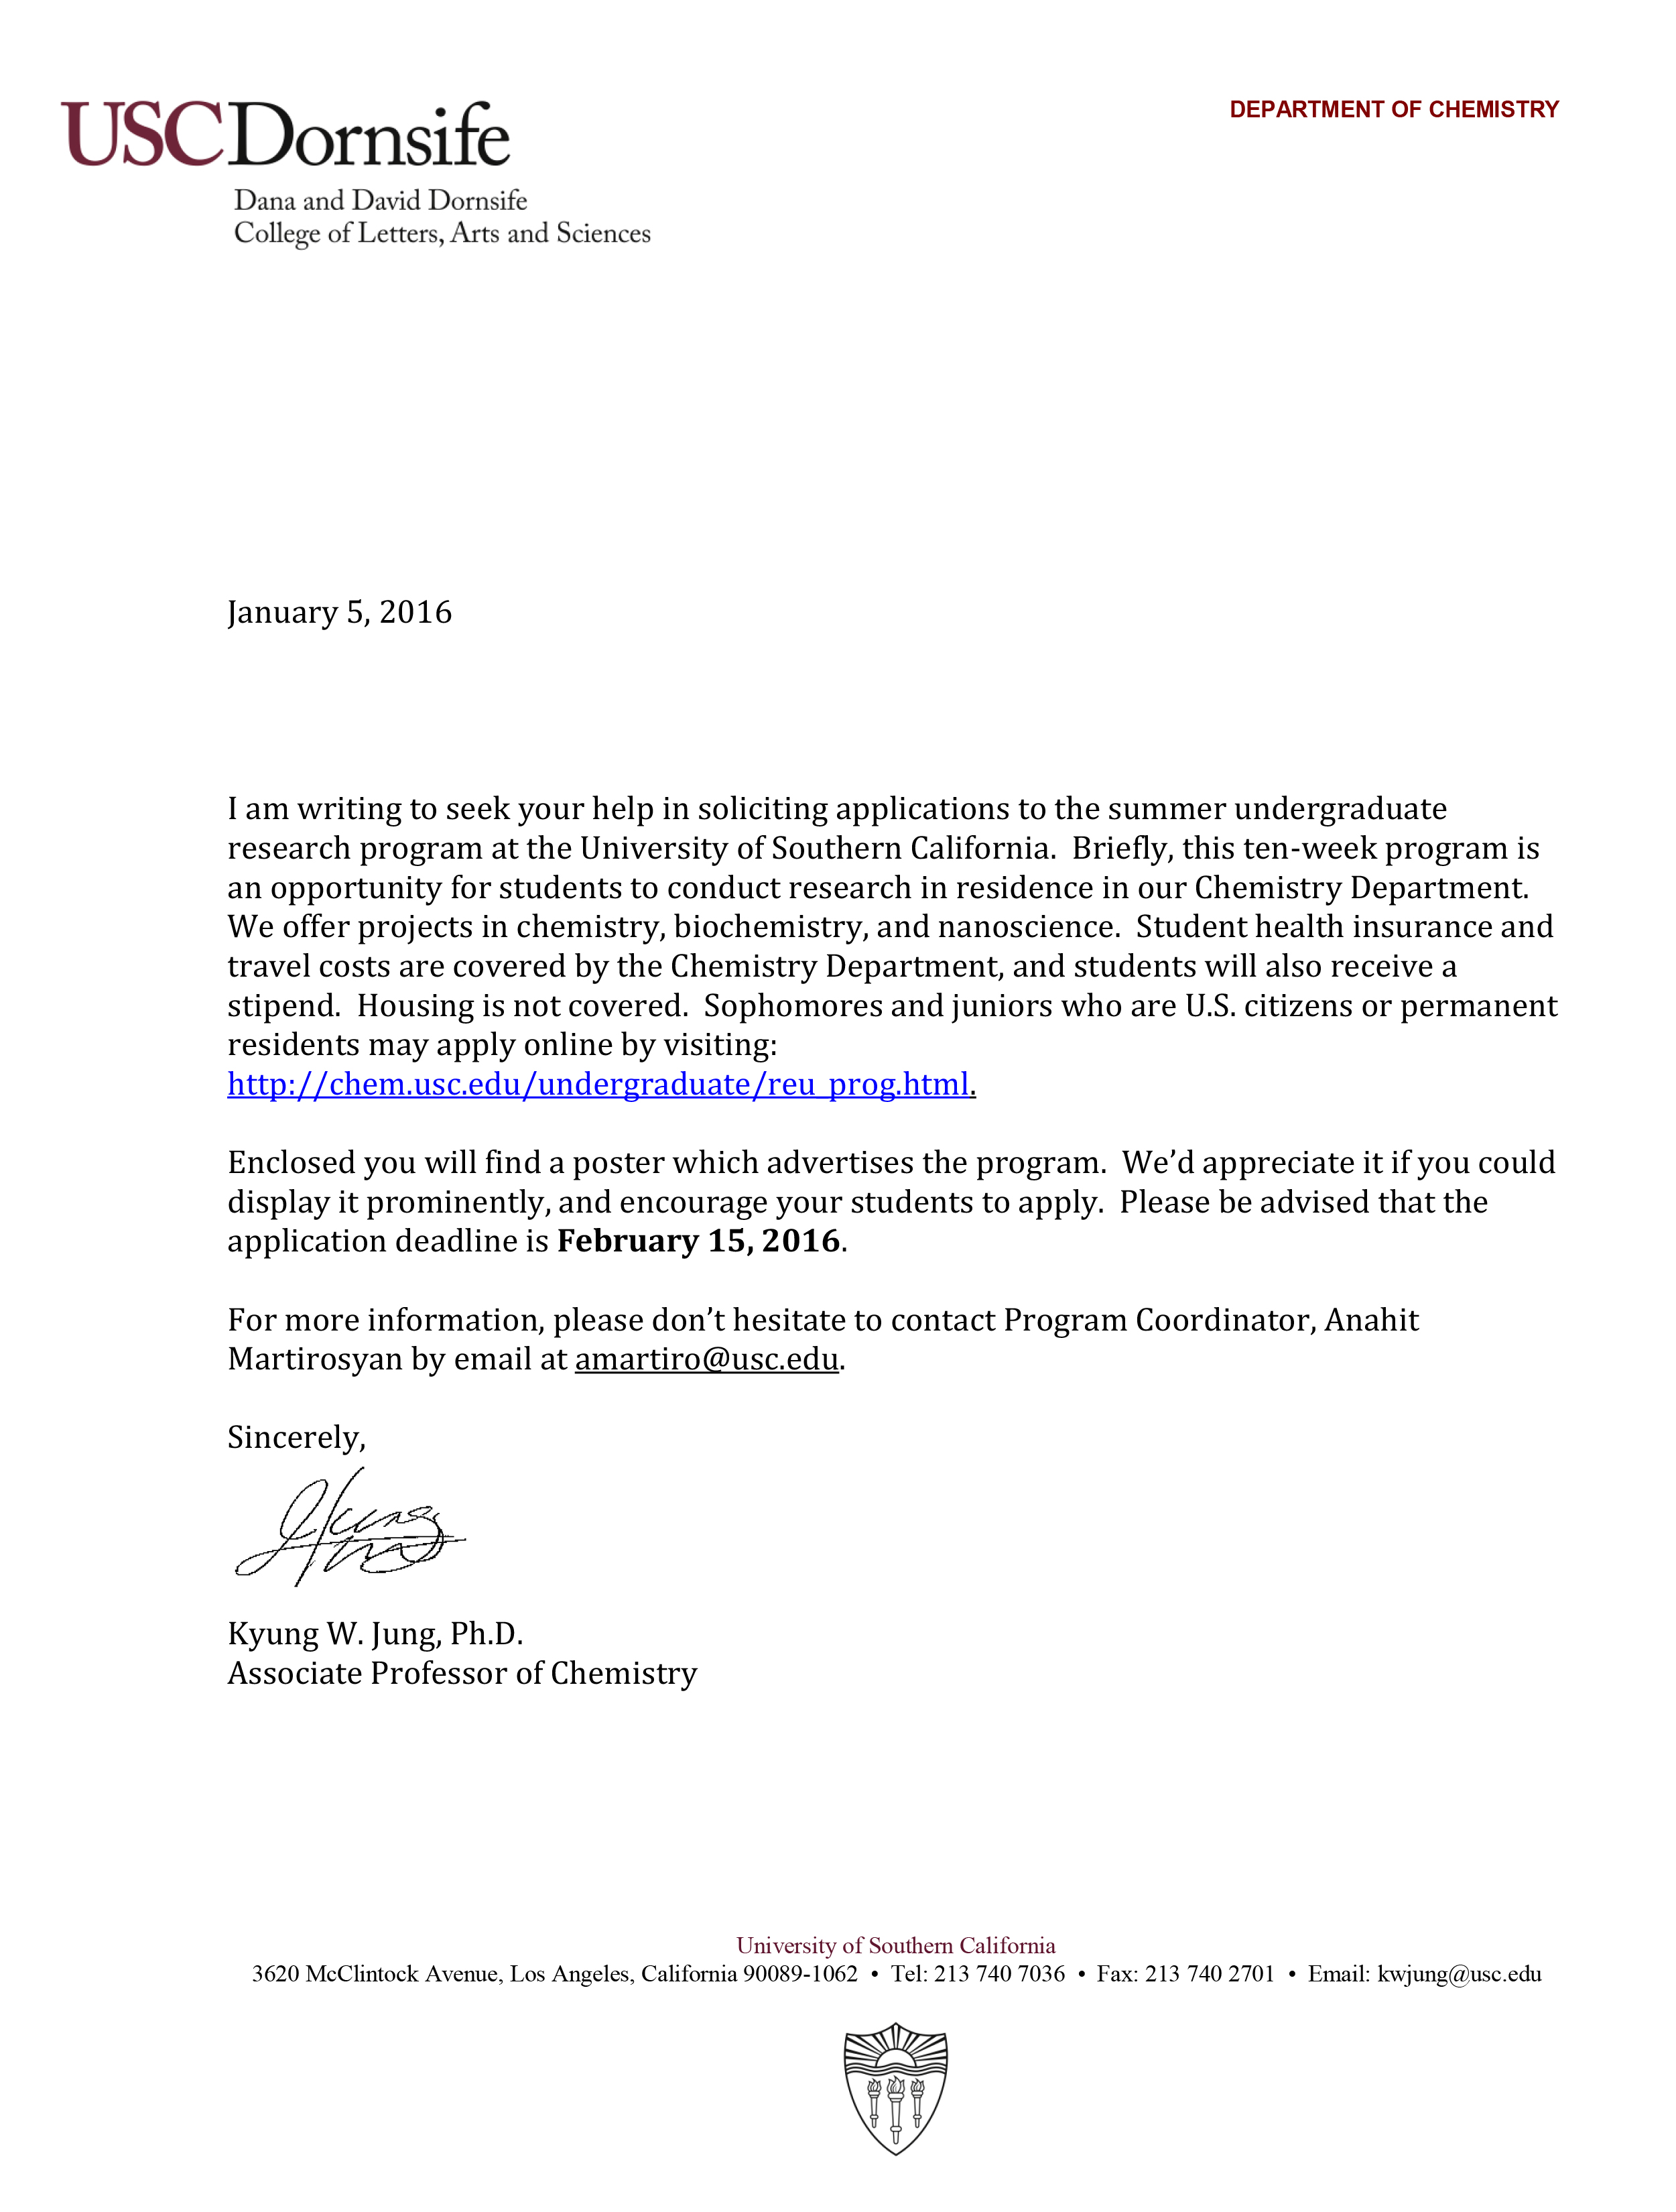 usc acceptance letter informatin for letter usc admission essay the erlenmeyer flask usc chemistry undergraduate summer research